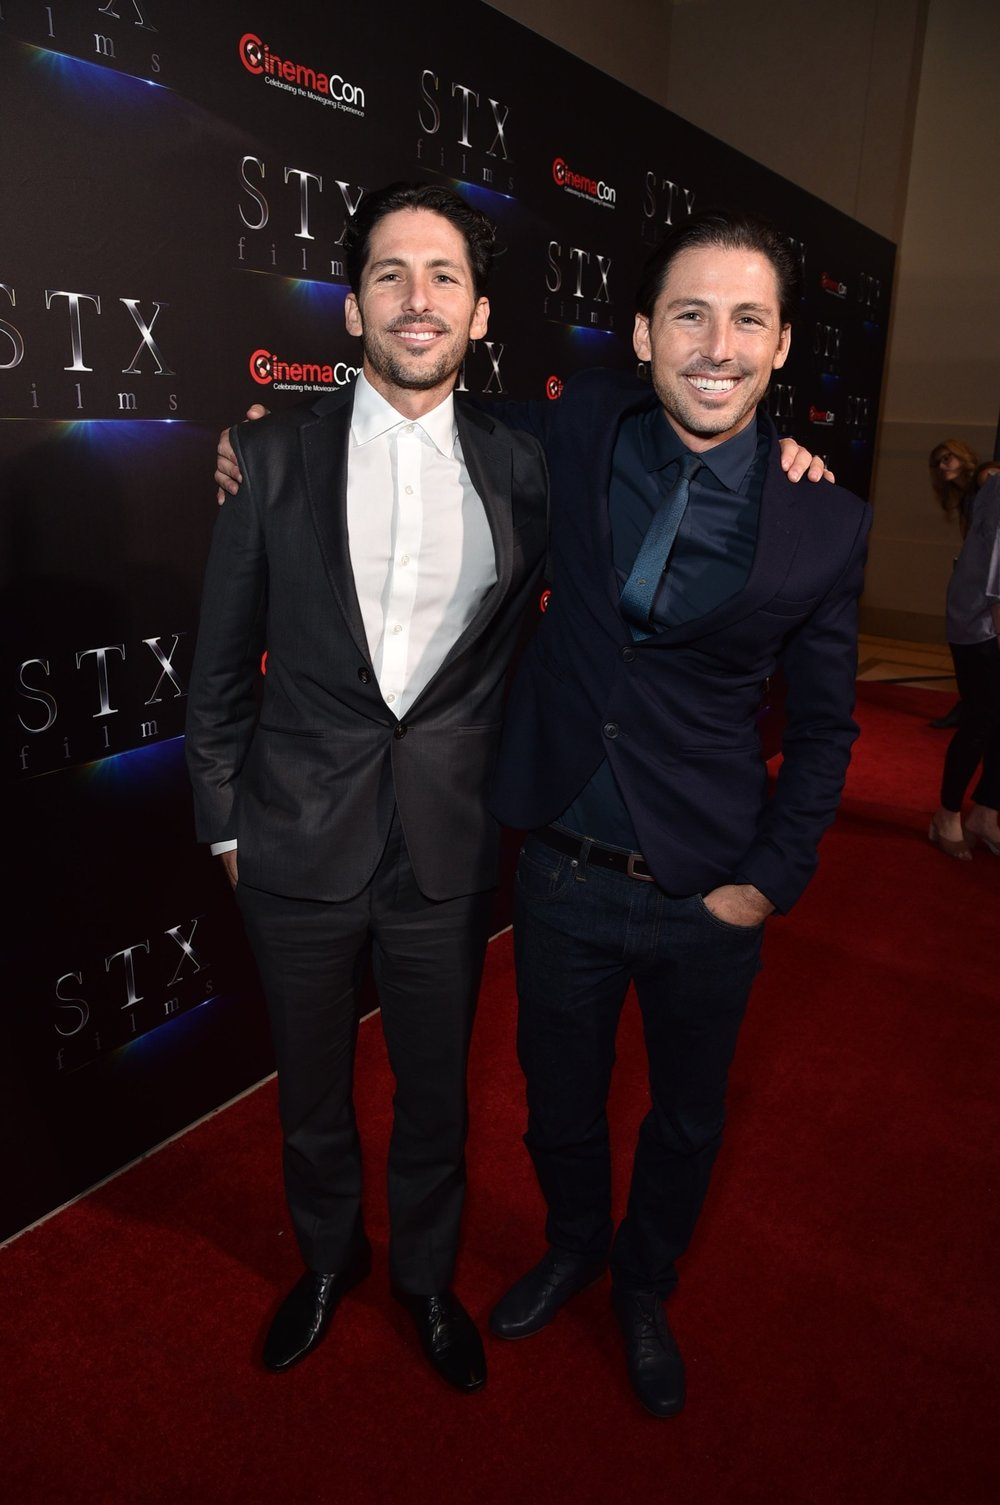 Aaron Kandell and Jordan Kandell attend STXfilms' 2018 CinemaCon Presentation at The Colosseum of Caesars Palace, Las Vegas, NV Tuesday, April 24, 2018.